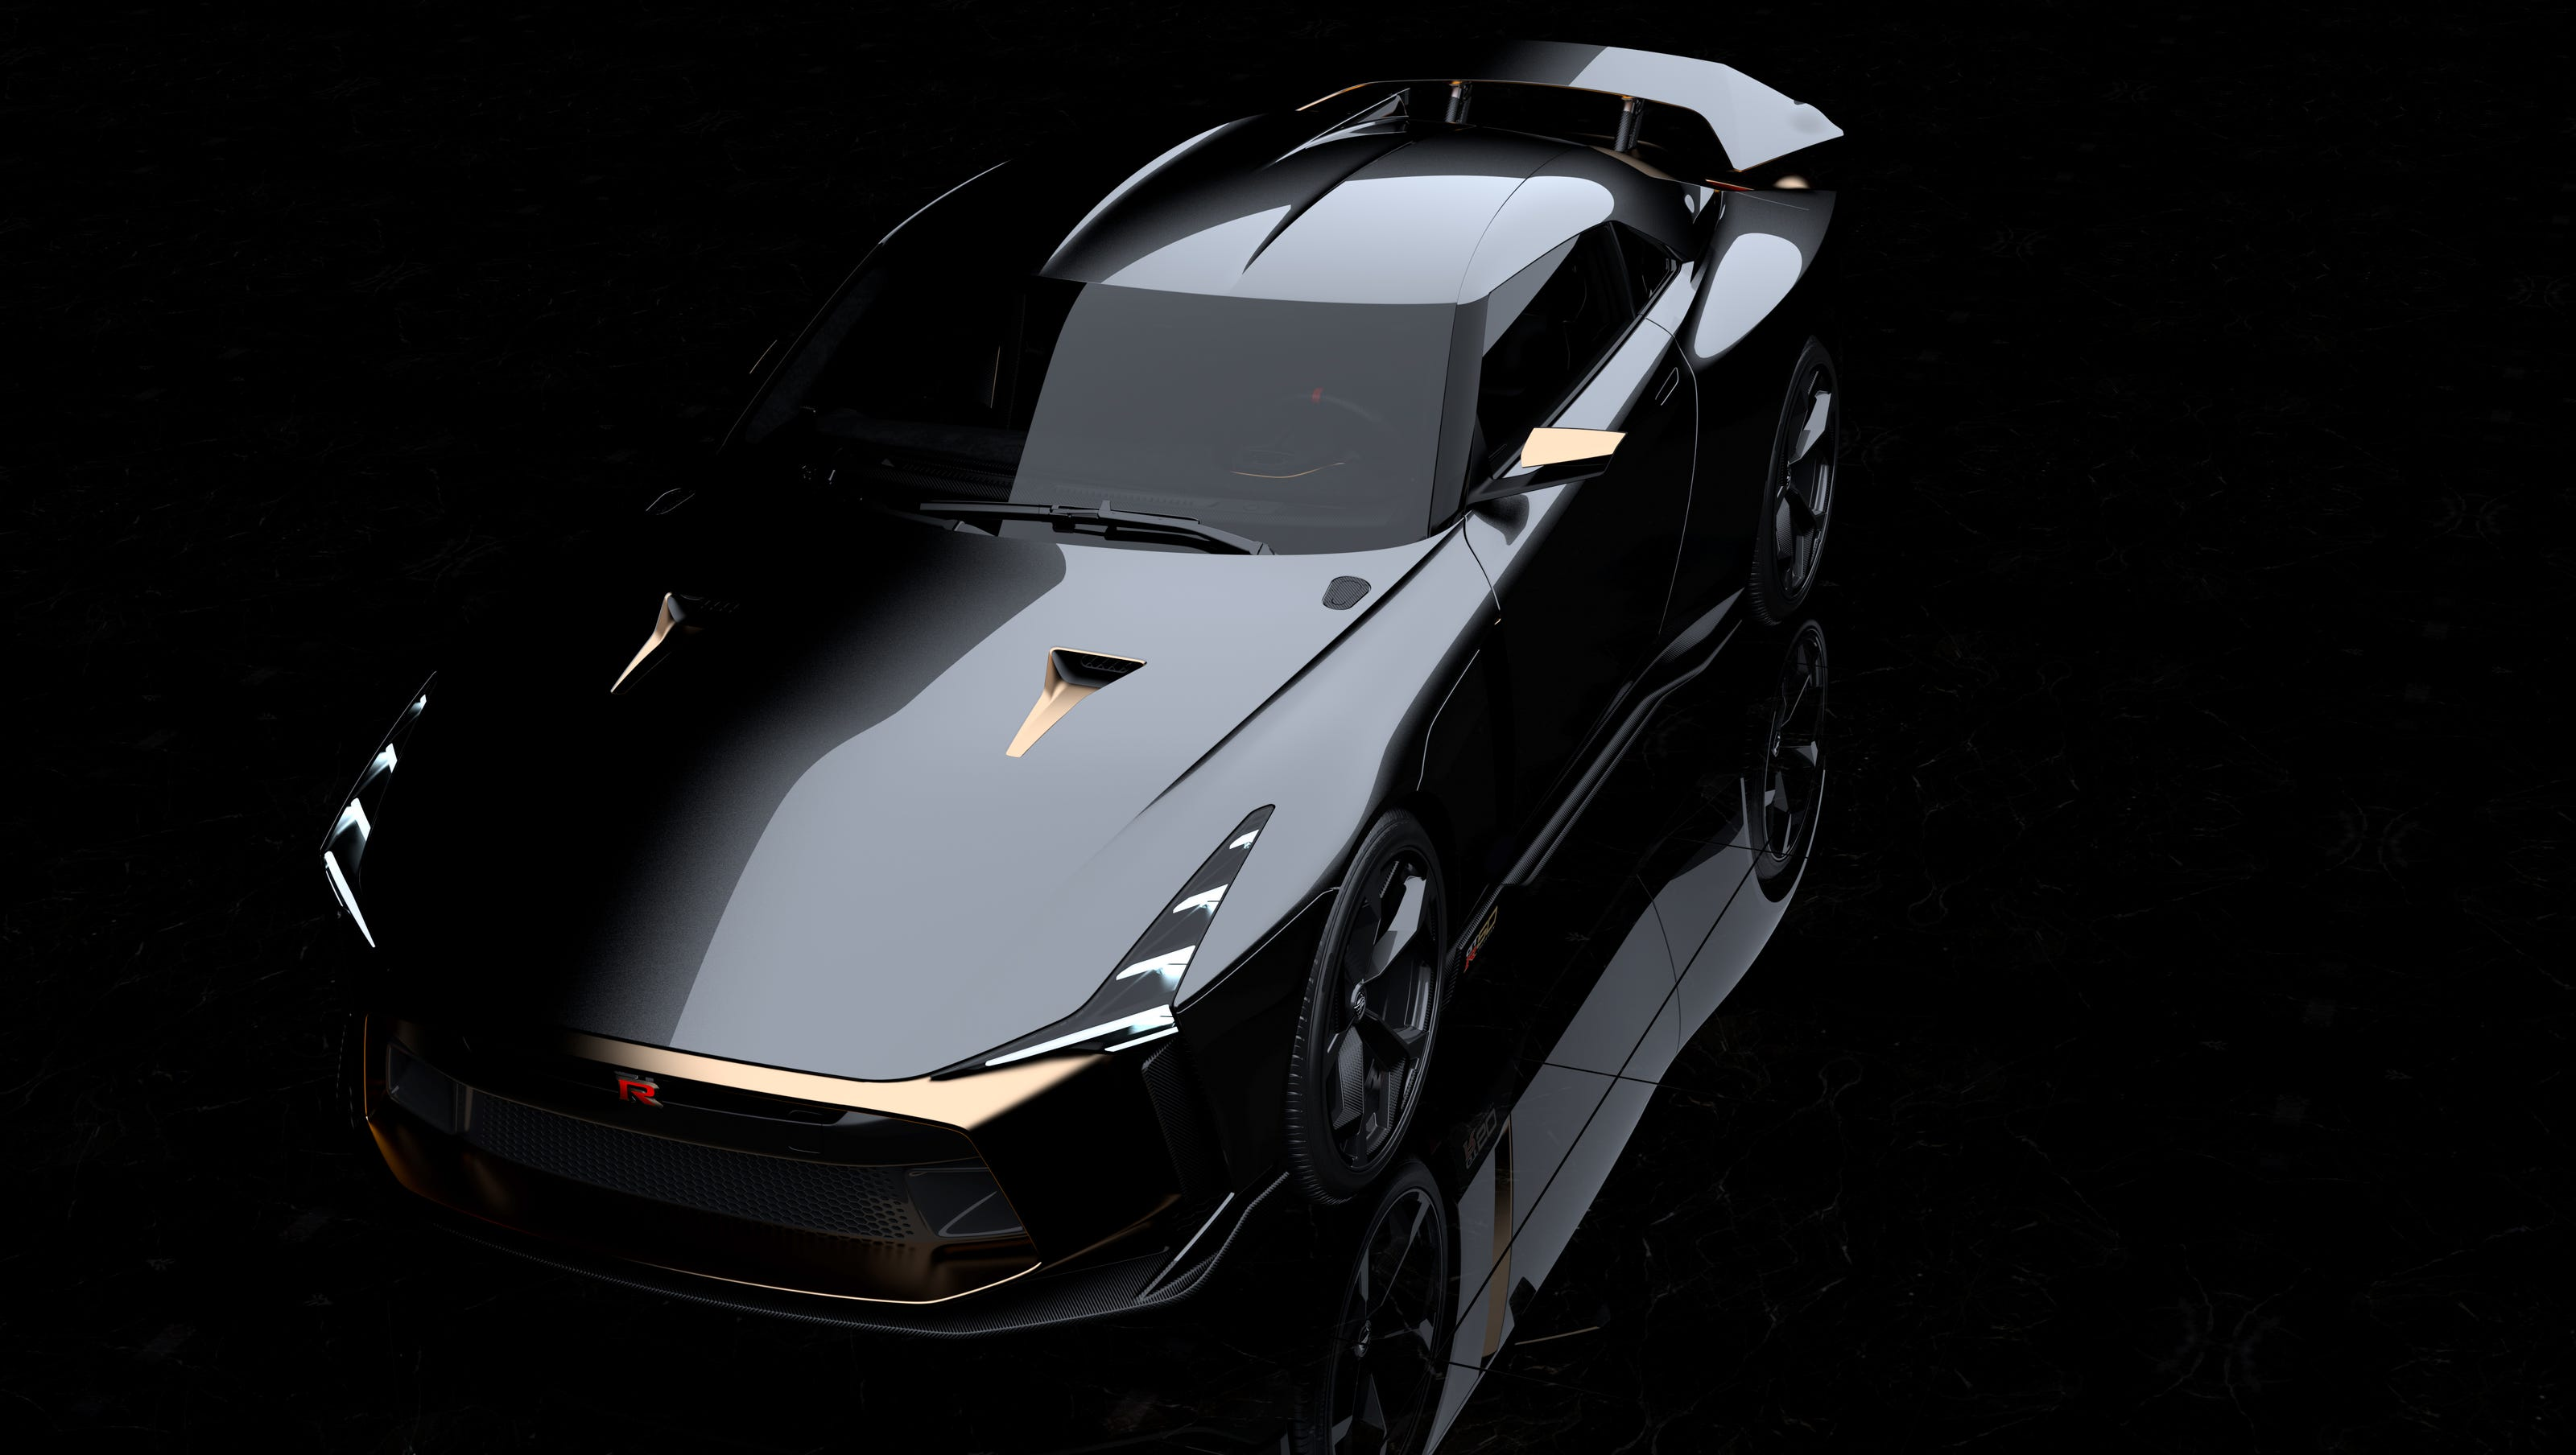 Gtr R36 Concept >> Nissan injects Italian design into sports car concept, creating the GT-R50